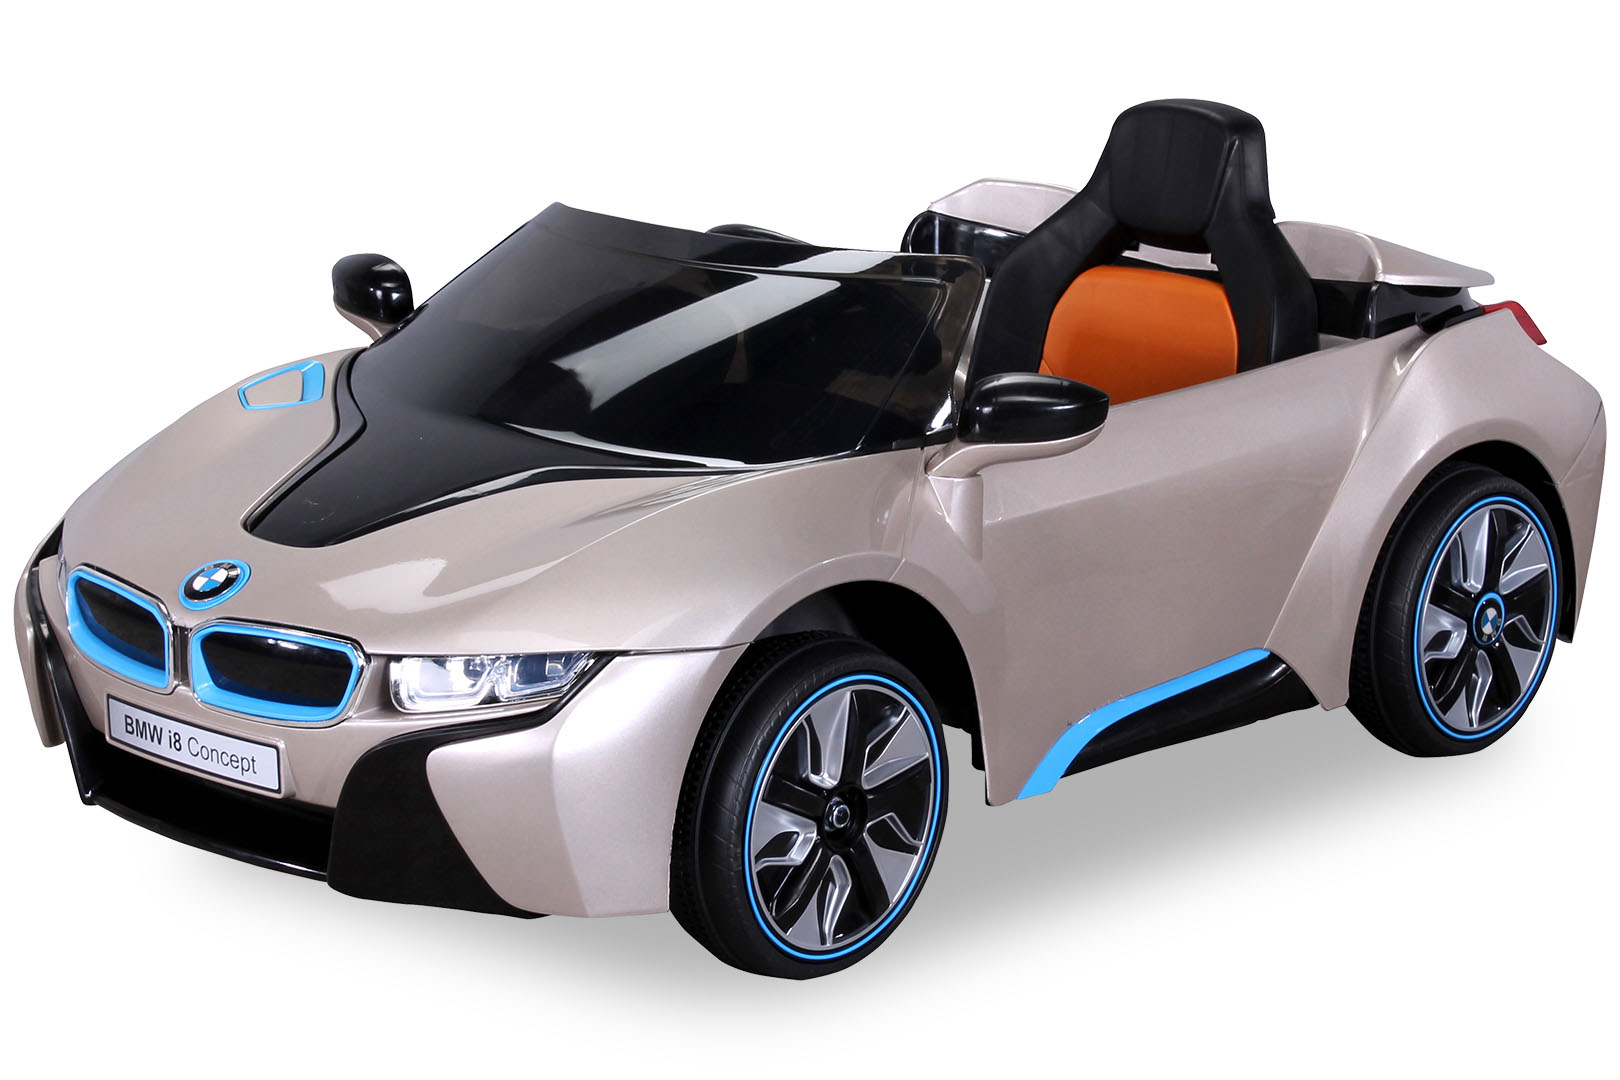 enfants voiture lectrique bmw i8 pour v hicule ebay. Black Bedroom Furniture Sets. Home Design Ideas